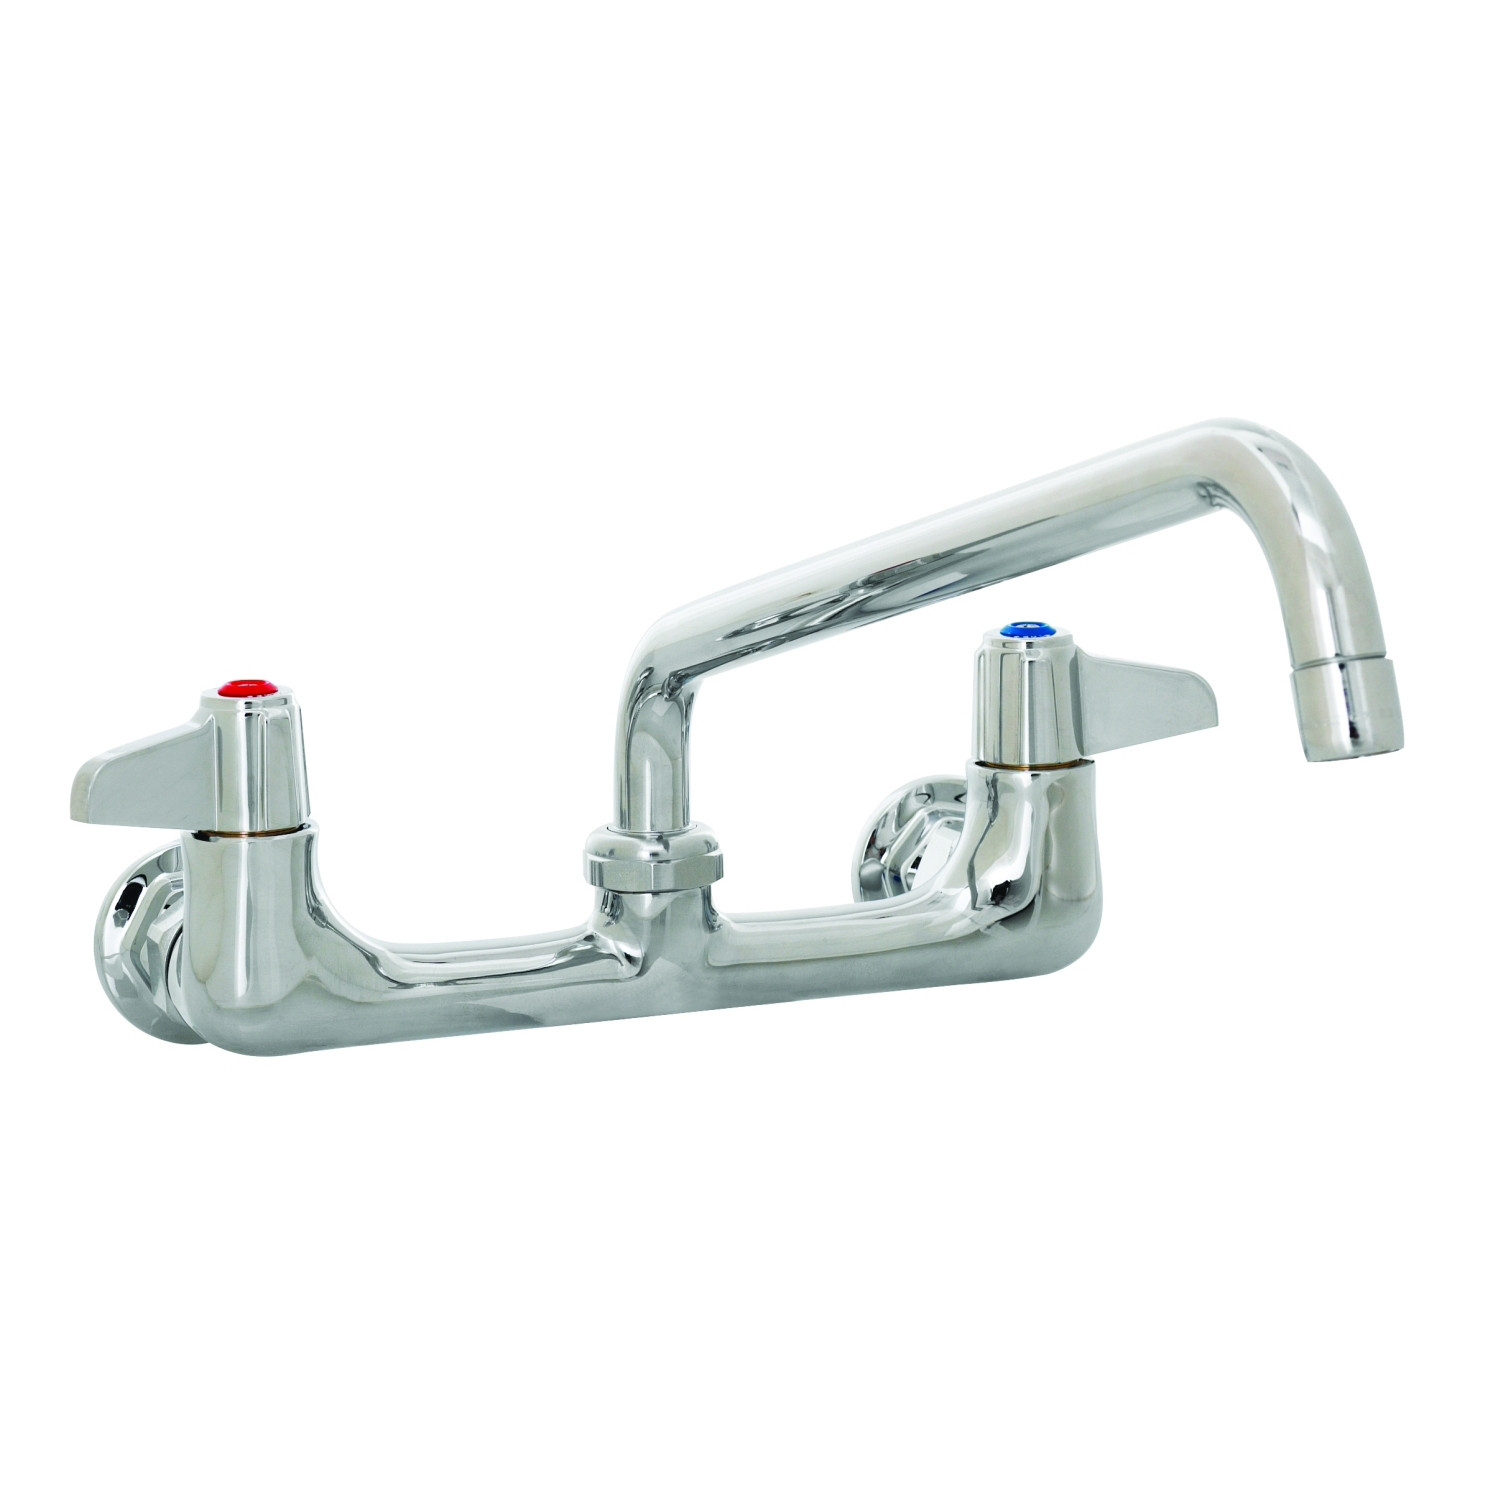 Equip Manual Faucets: 5F-8WLX14 - T&S Brass